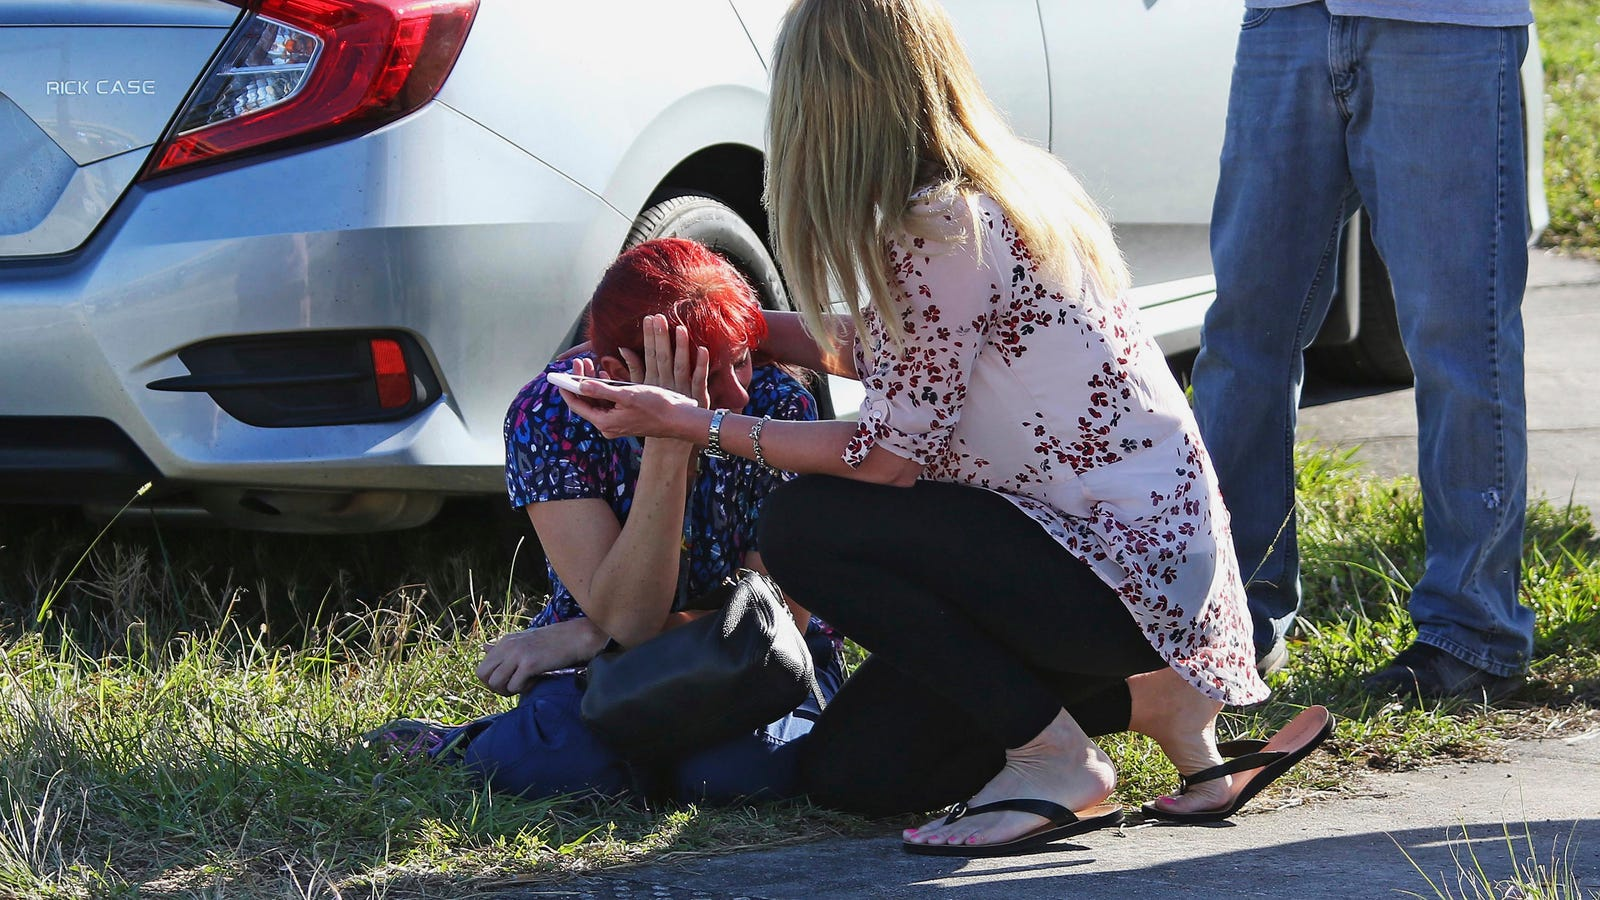 What We Do and Do Not Know About Florida High School Shooting Suspect Nicolas Cruz